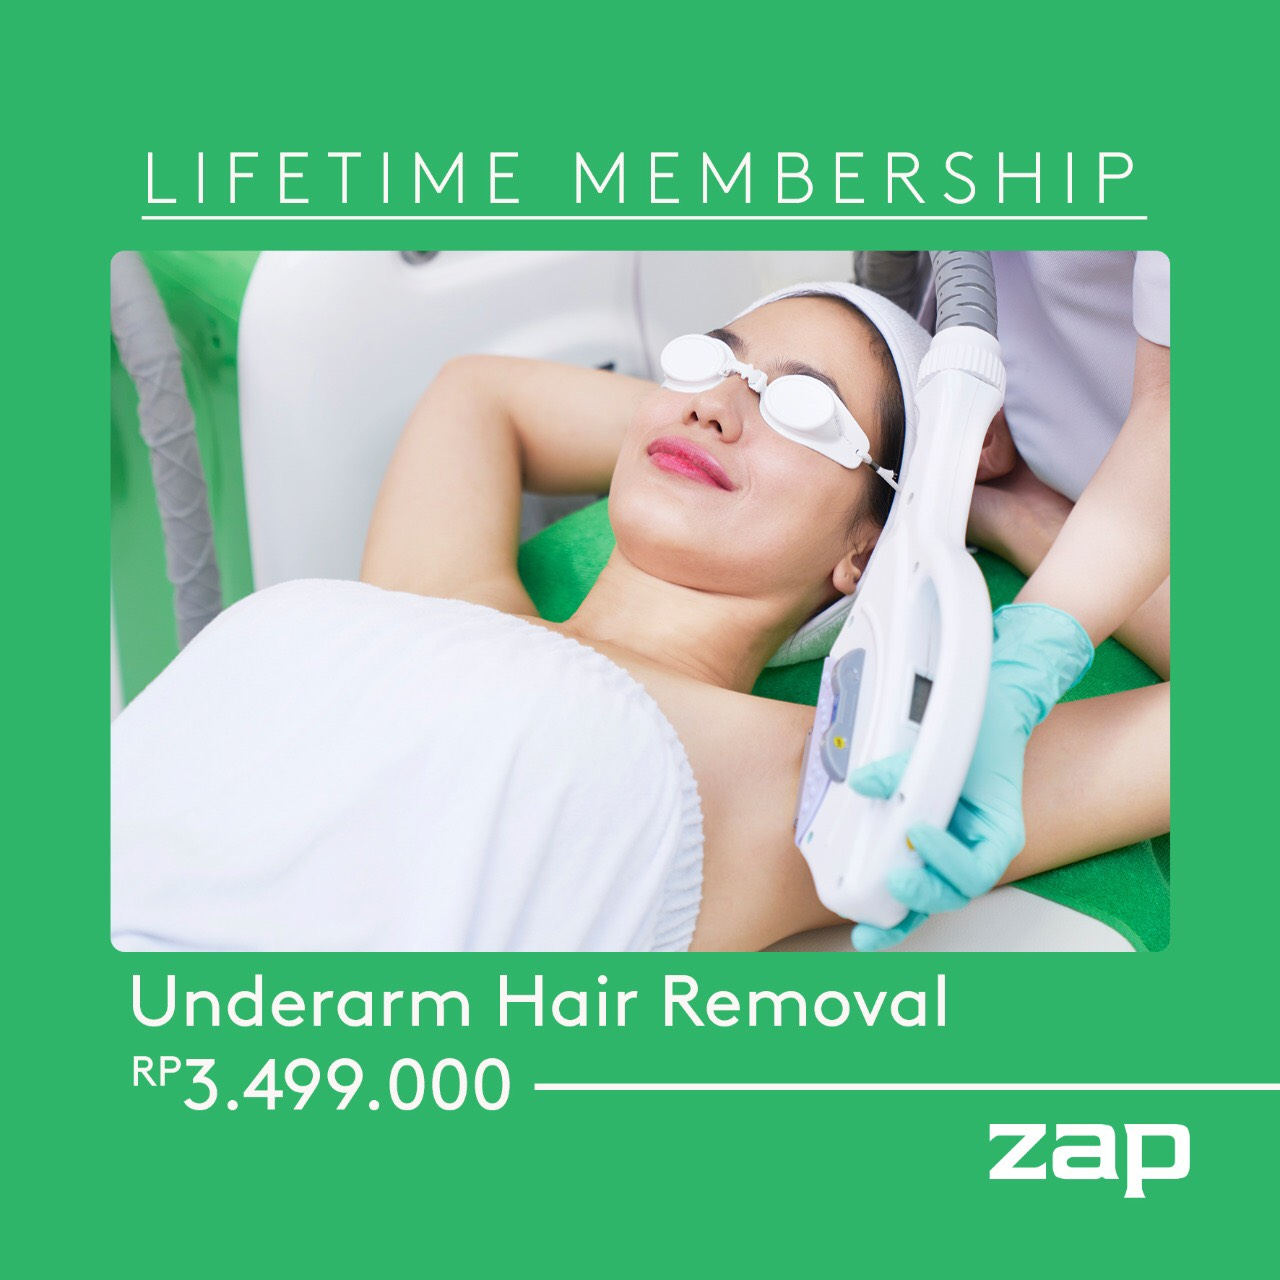 Lifetime Membership Underarm Hair Removal